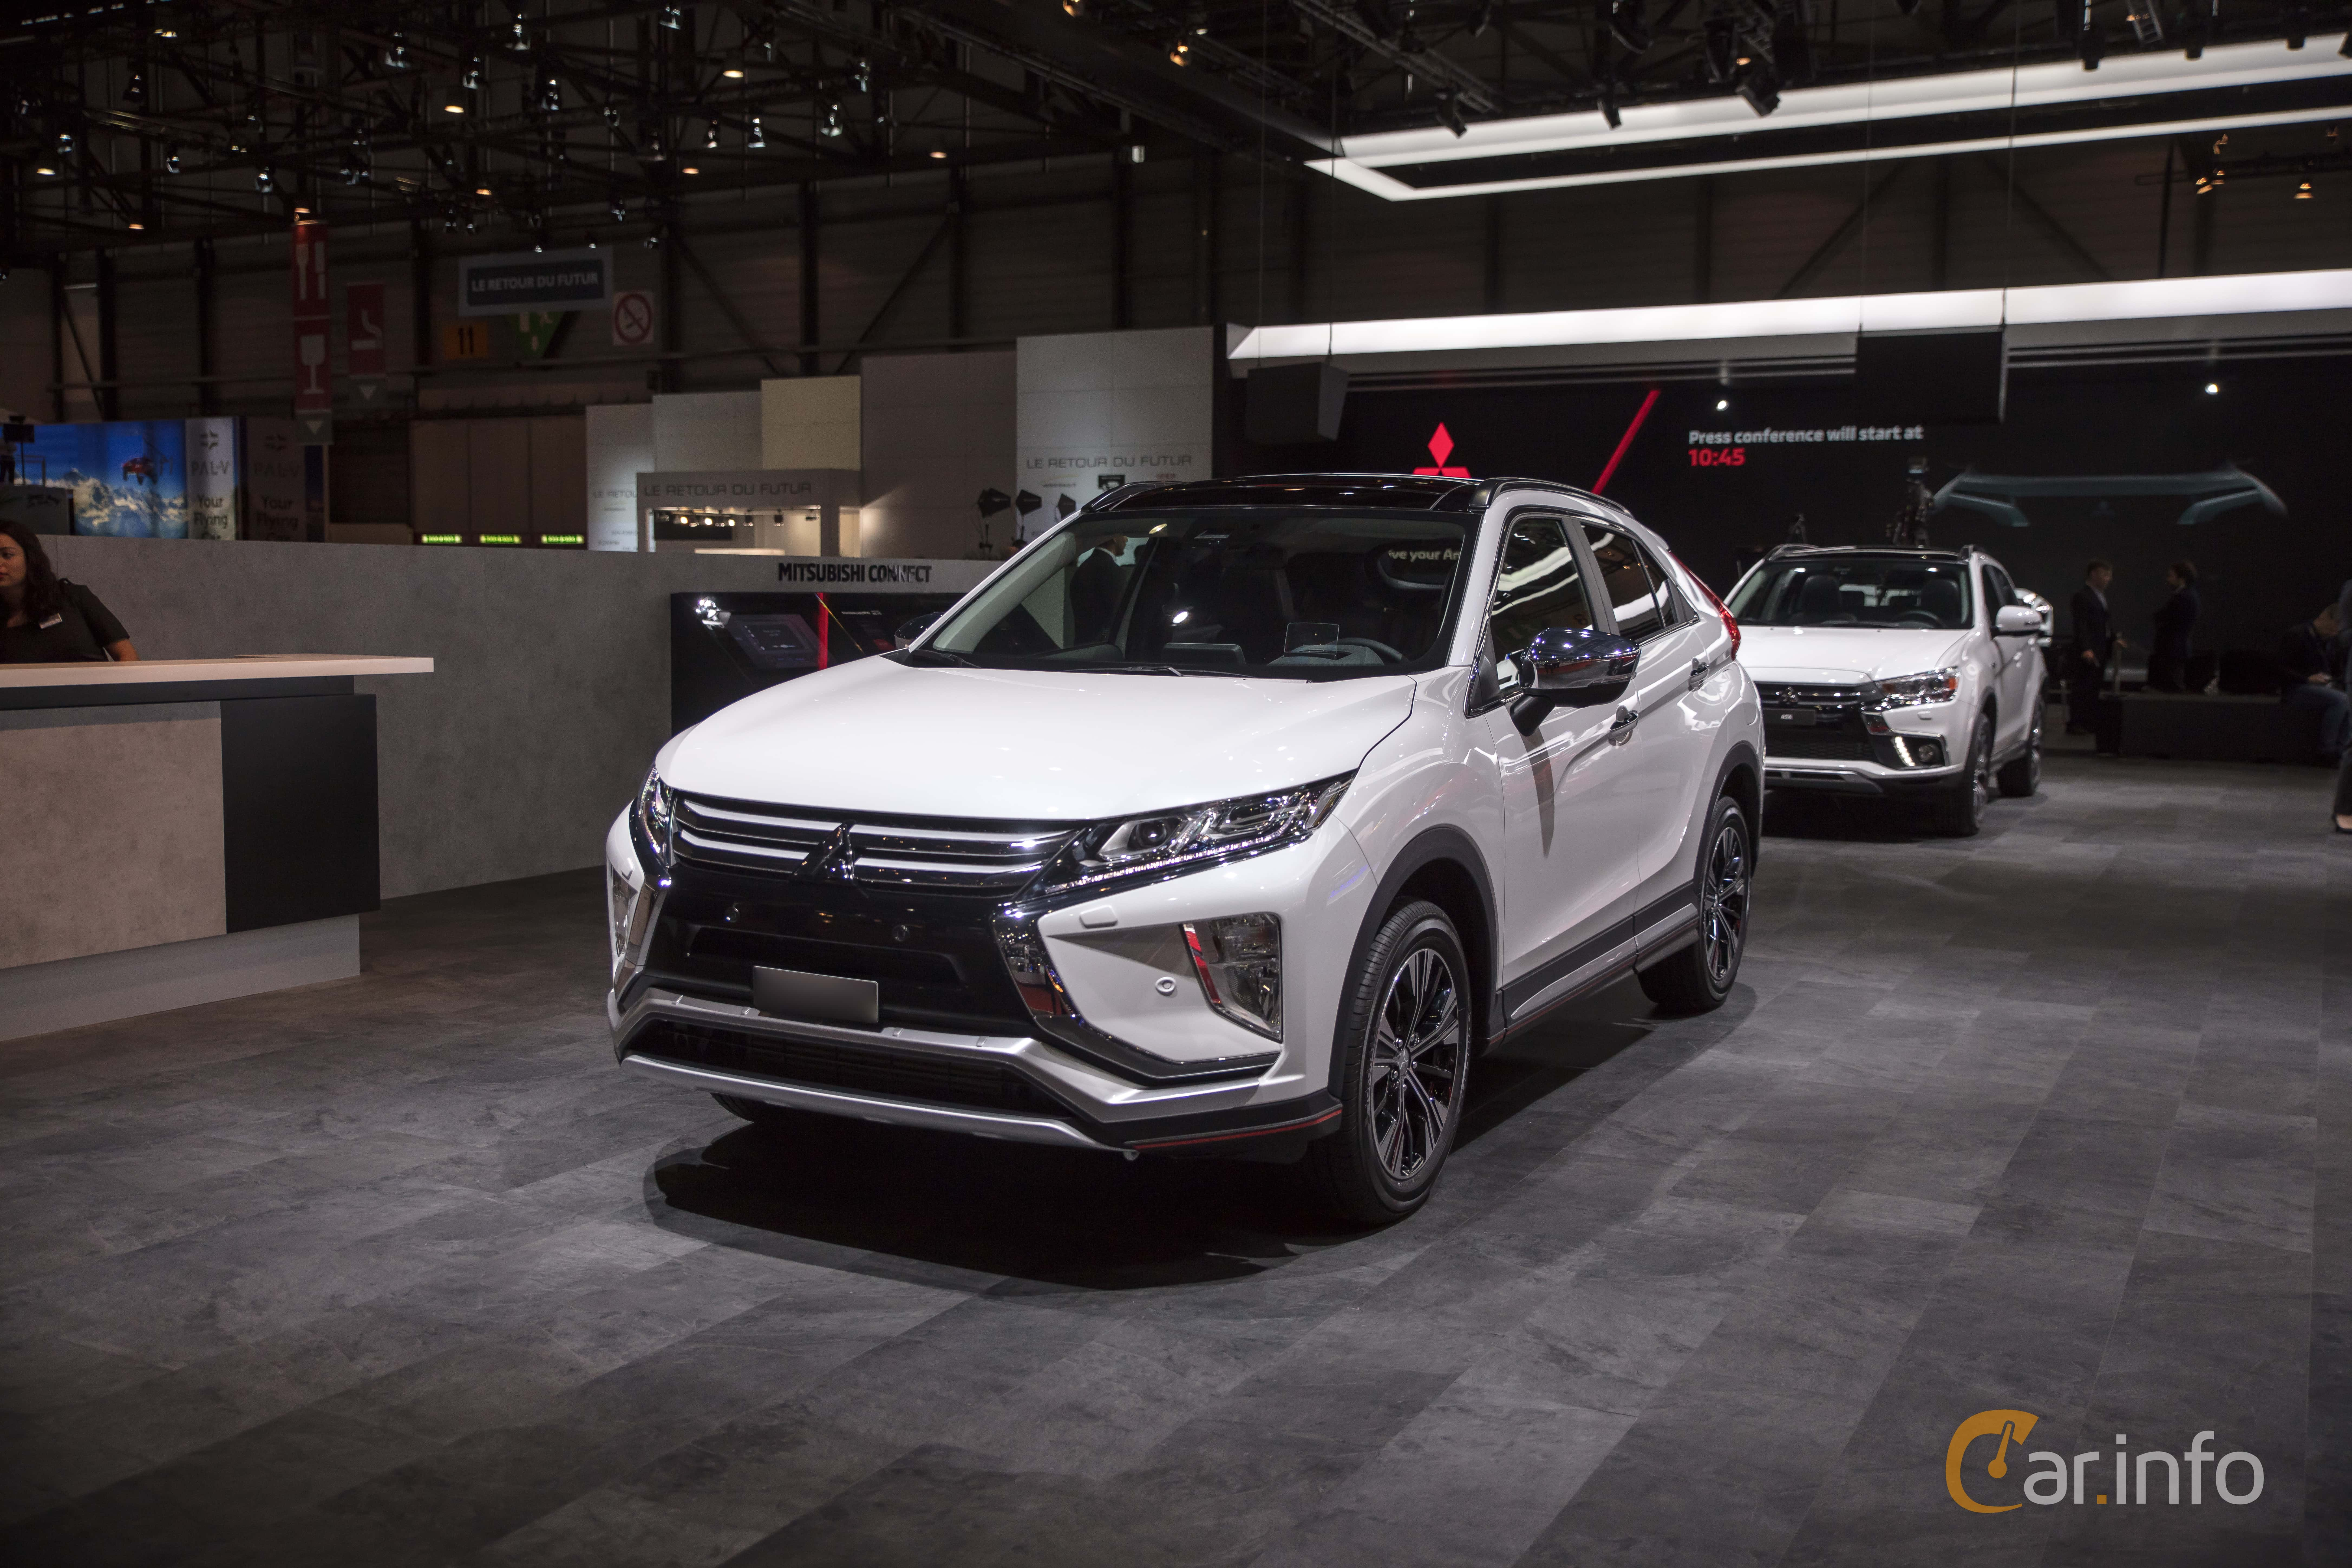 9 images of Mitsubishi Eclipse Cross 1 5 T-MIVEC ClearTec